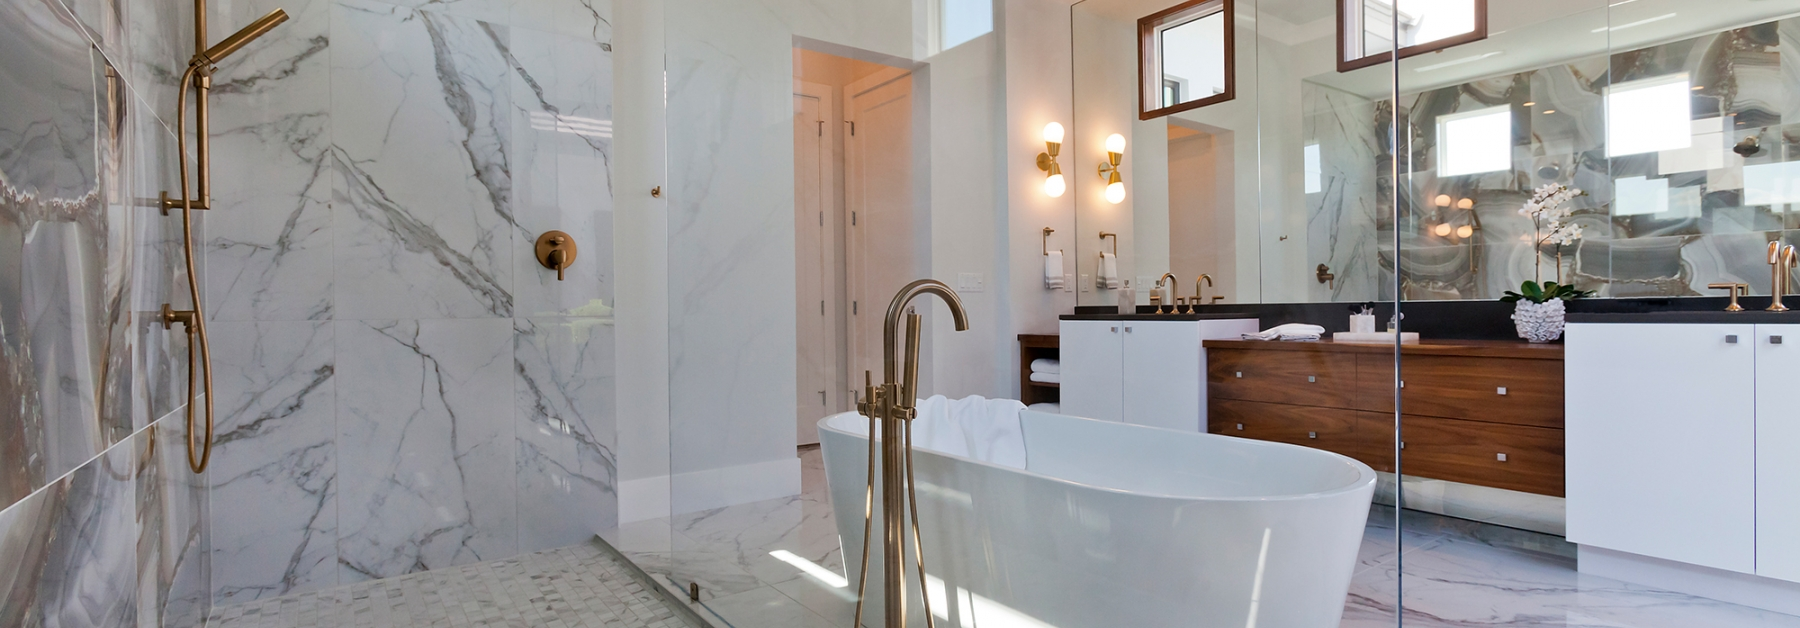 The Tindarra master bathroom by John Cannon Homes